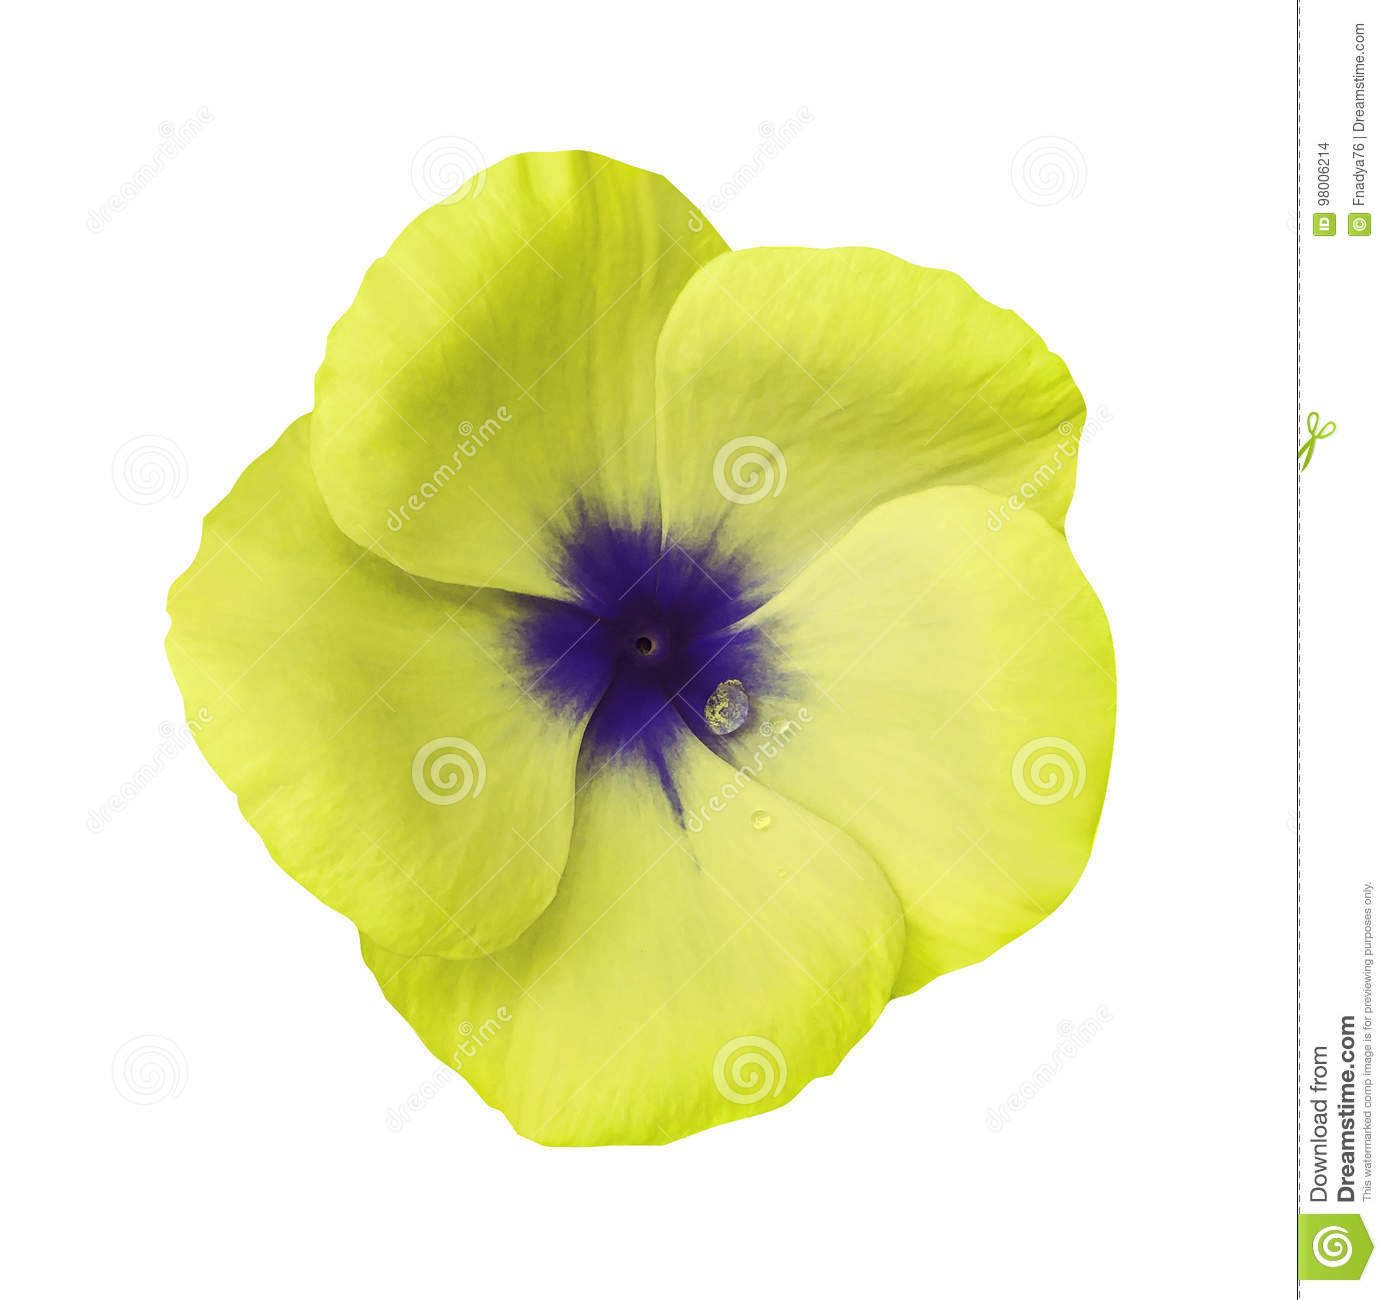 Yellow Flower On Isolated White Background With Clipping Path